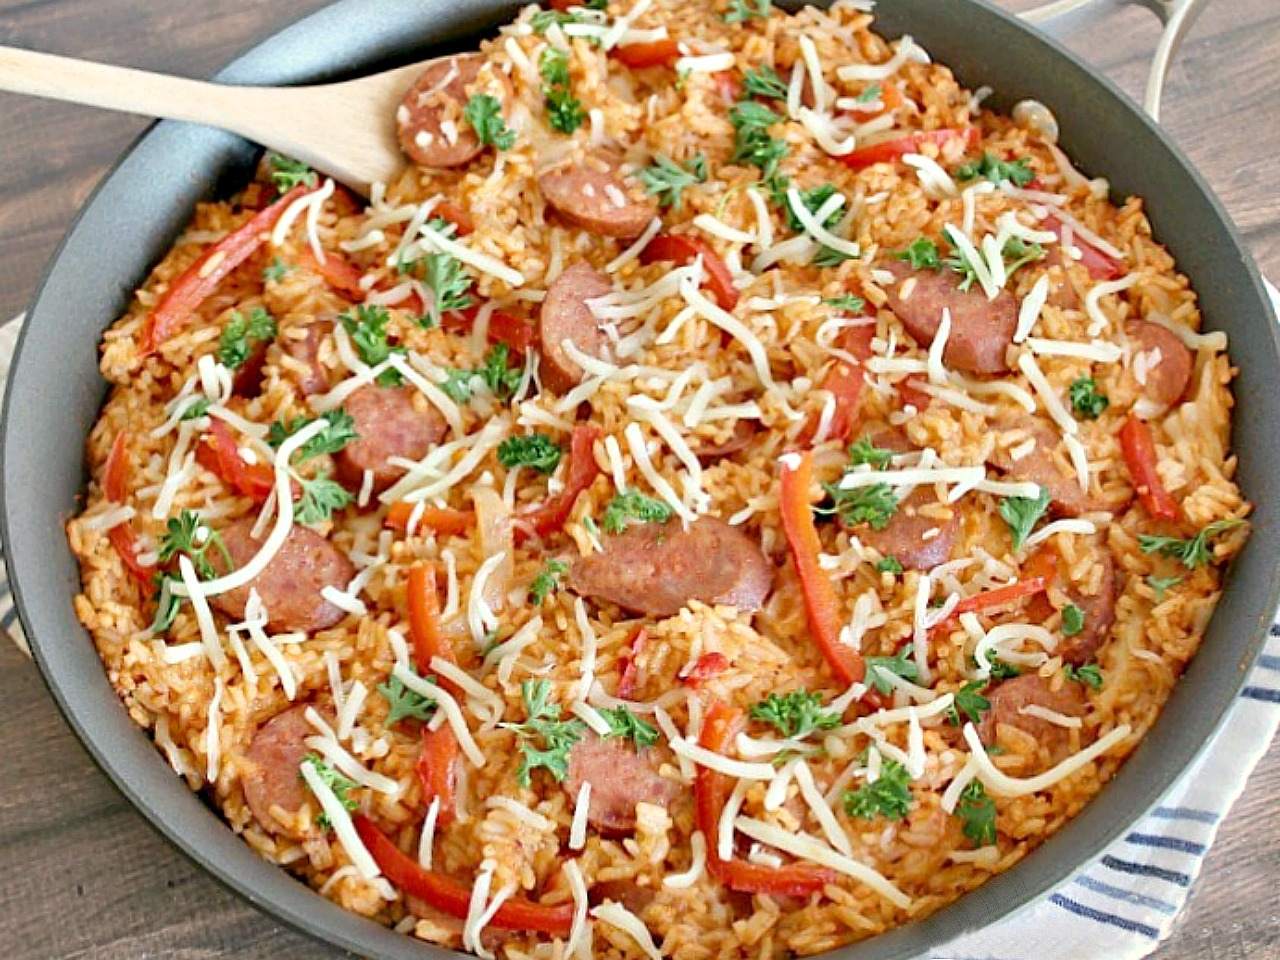 Easy Smoked Sausage and Rice Skillet is an easy, family loved, main dish packed with tons of  flavor that is ready in just 30 minutes. It's the perfect weeknight meal when need to get dinner on the table fast.